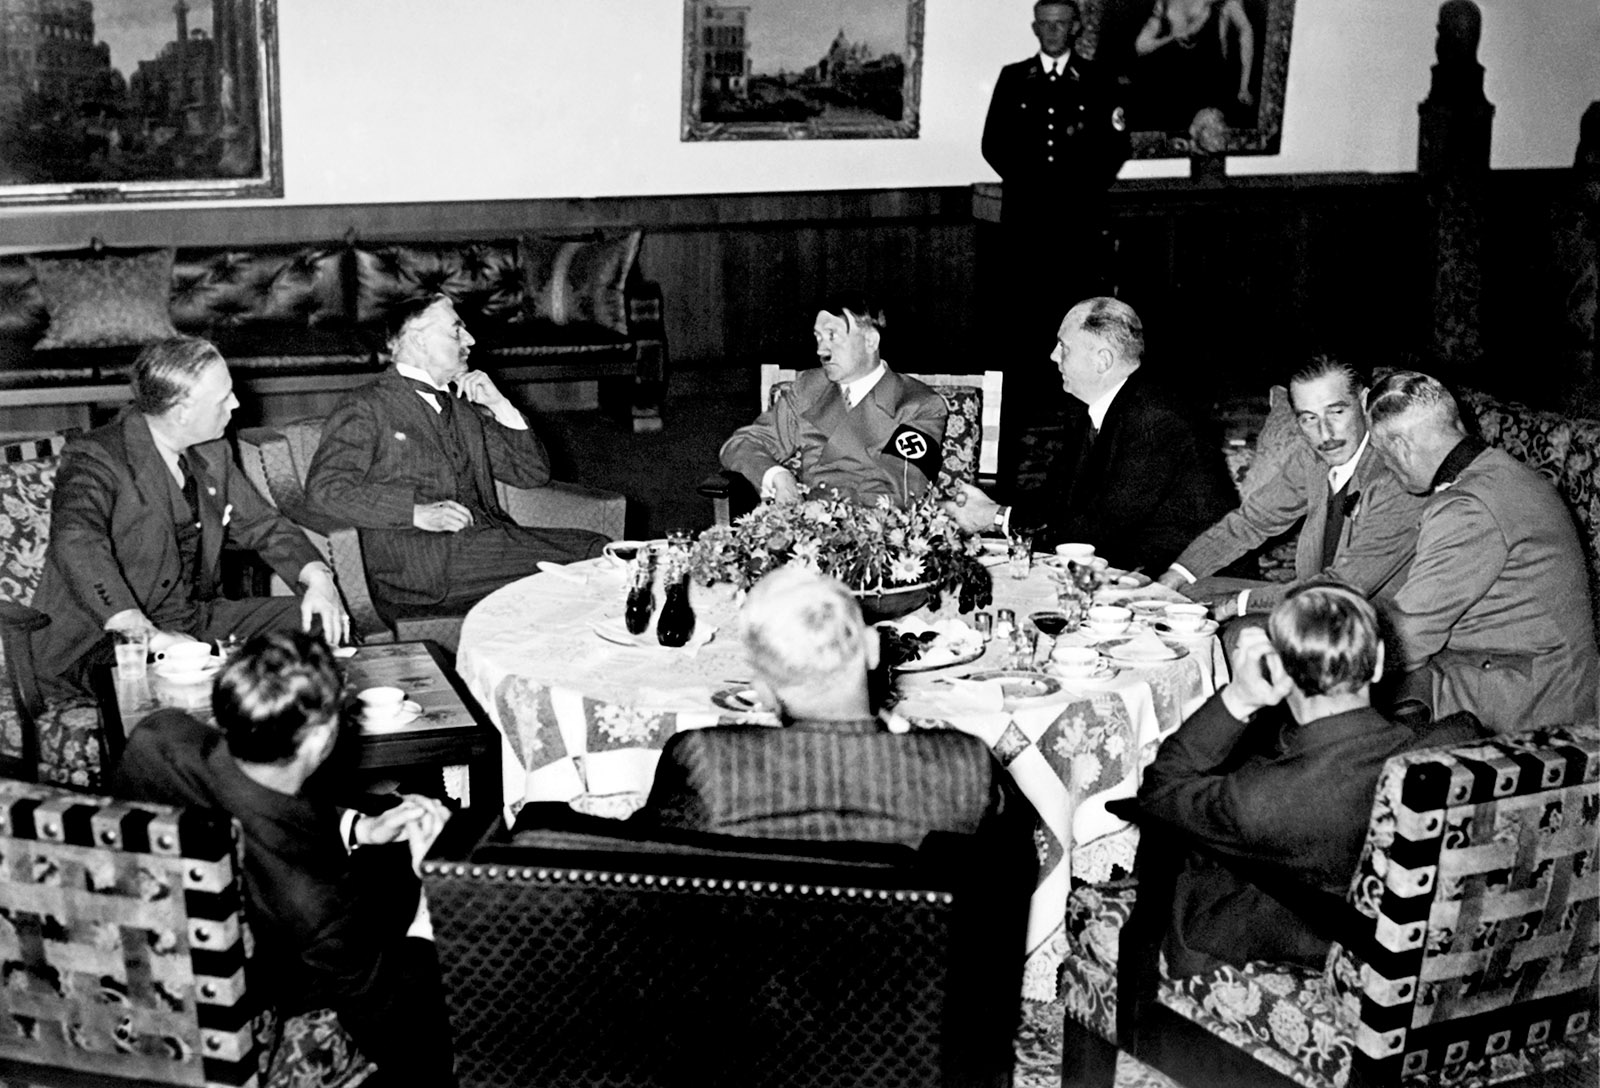 A meeting in Berchtesgaden to discuss Hitler's demand that Czechoslovakia cede the Sudetenland to Germany, September 1938